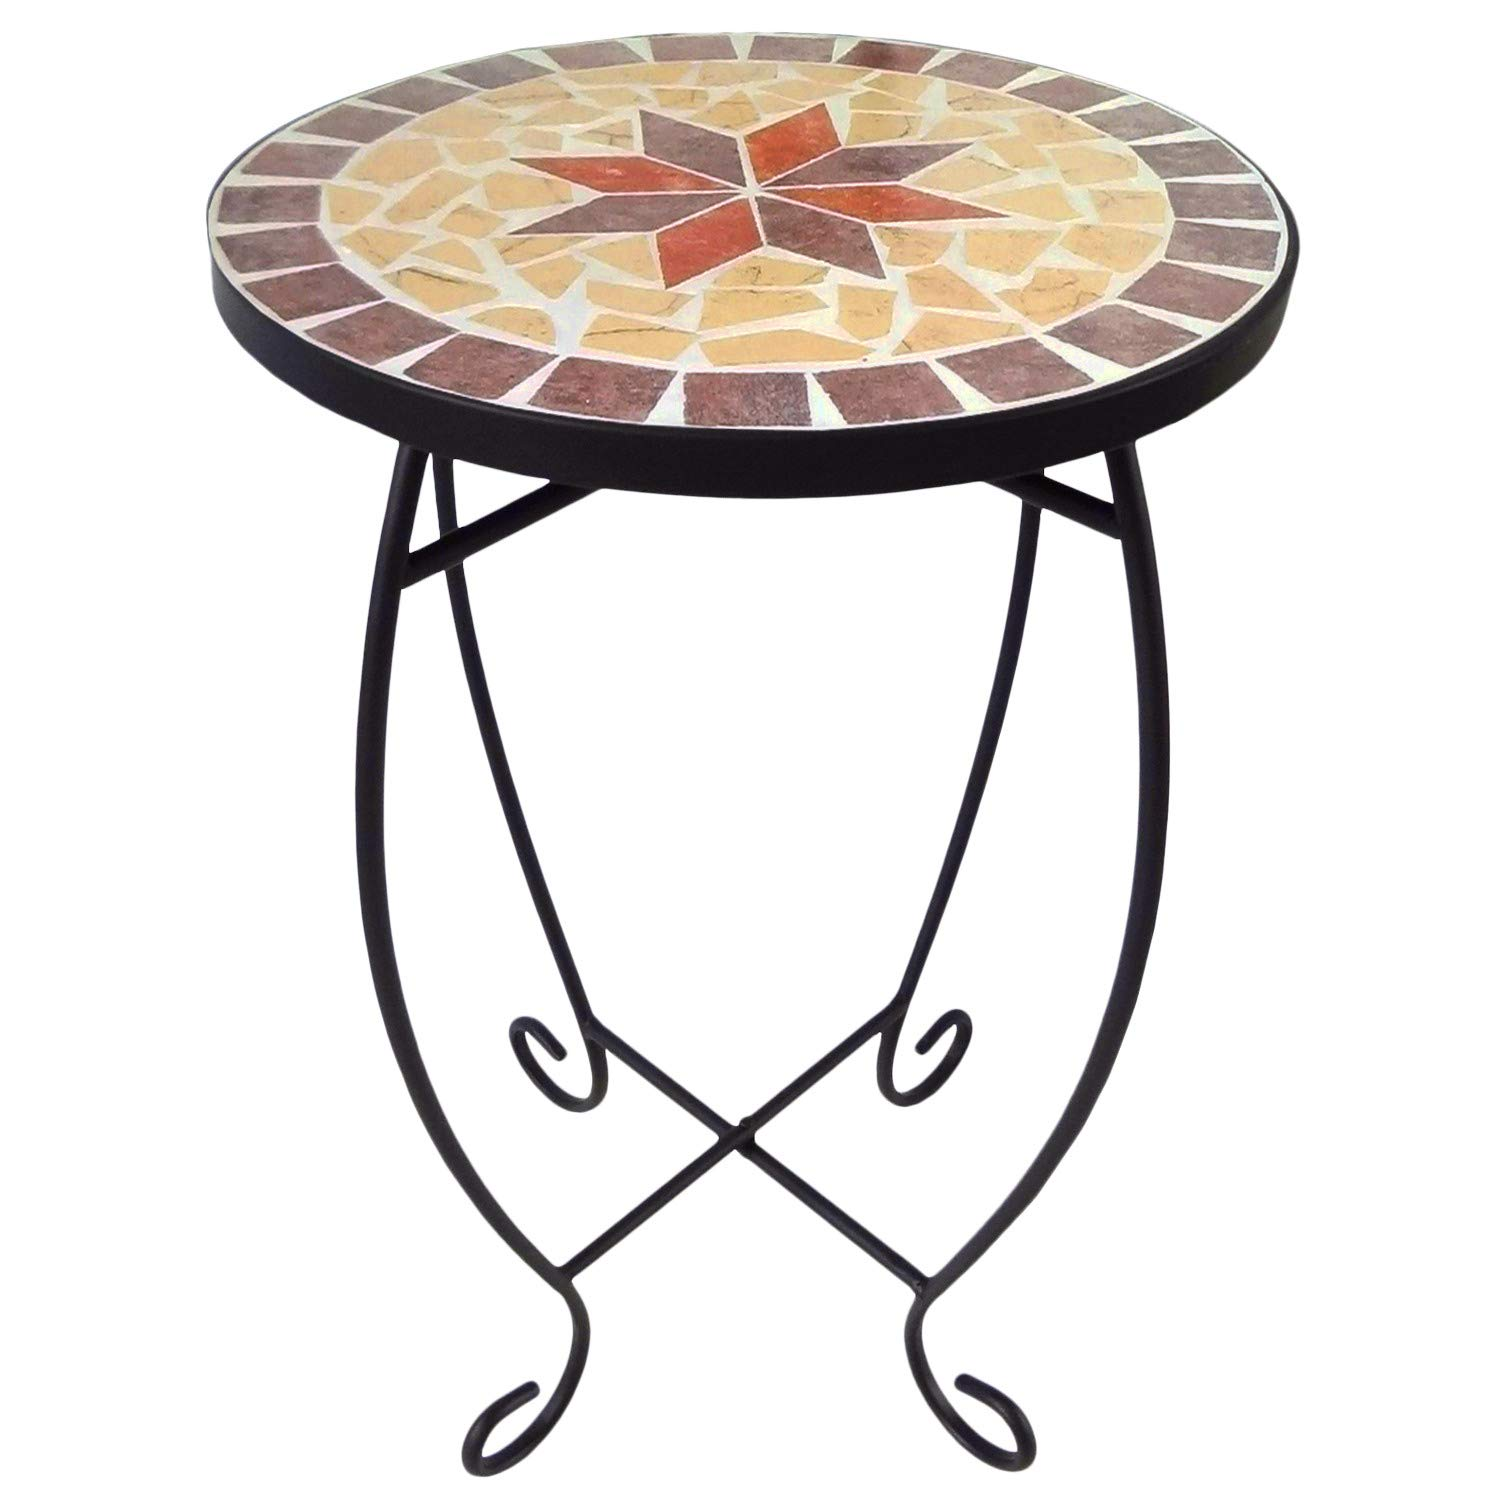 Small Round Side Table Mosaic Plant Stands Patio Balcony Outdoor